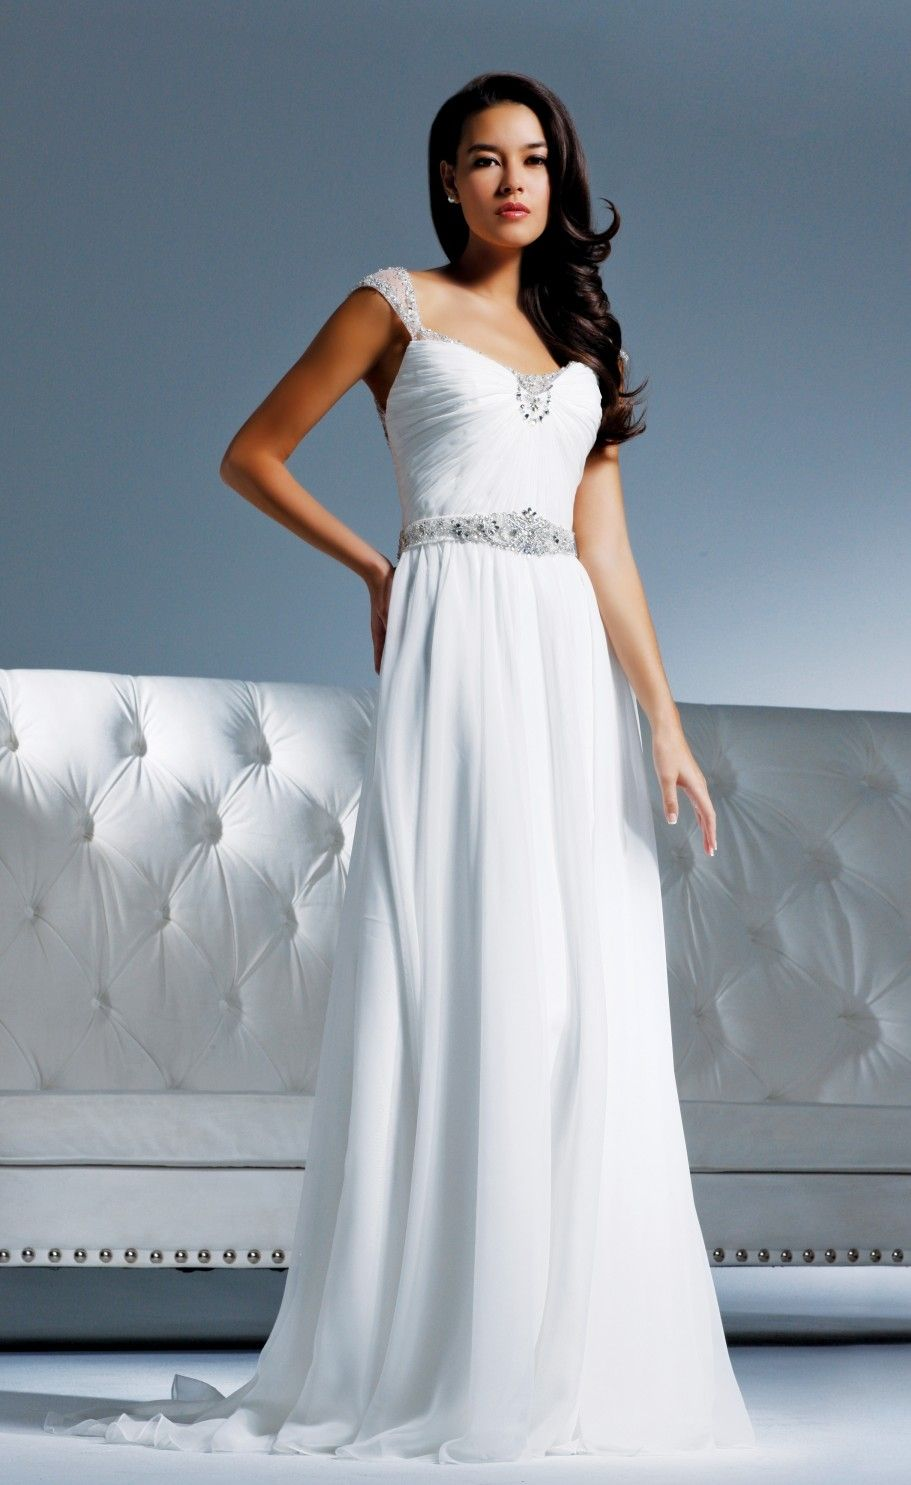 White Formal Dresses | Gommap Blog